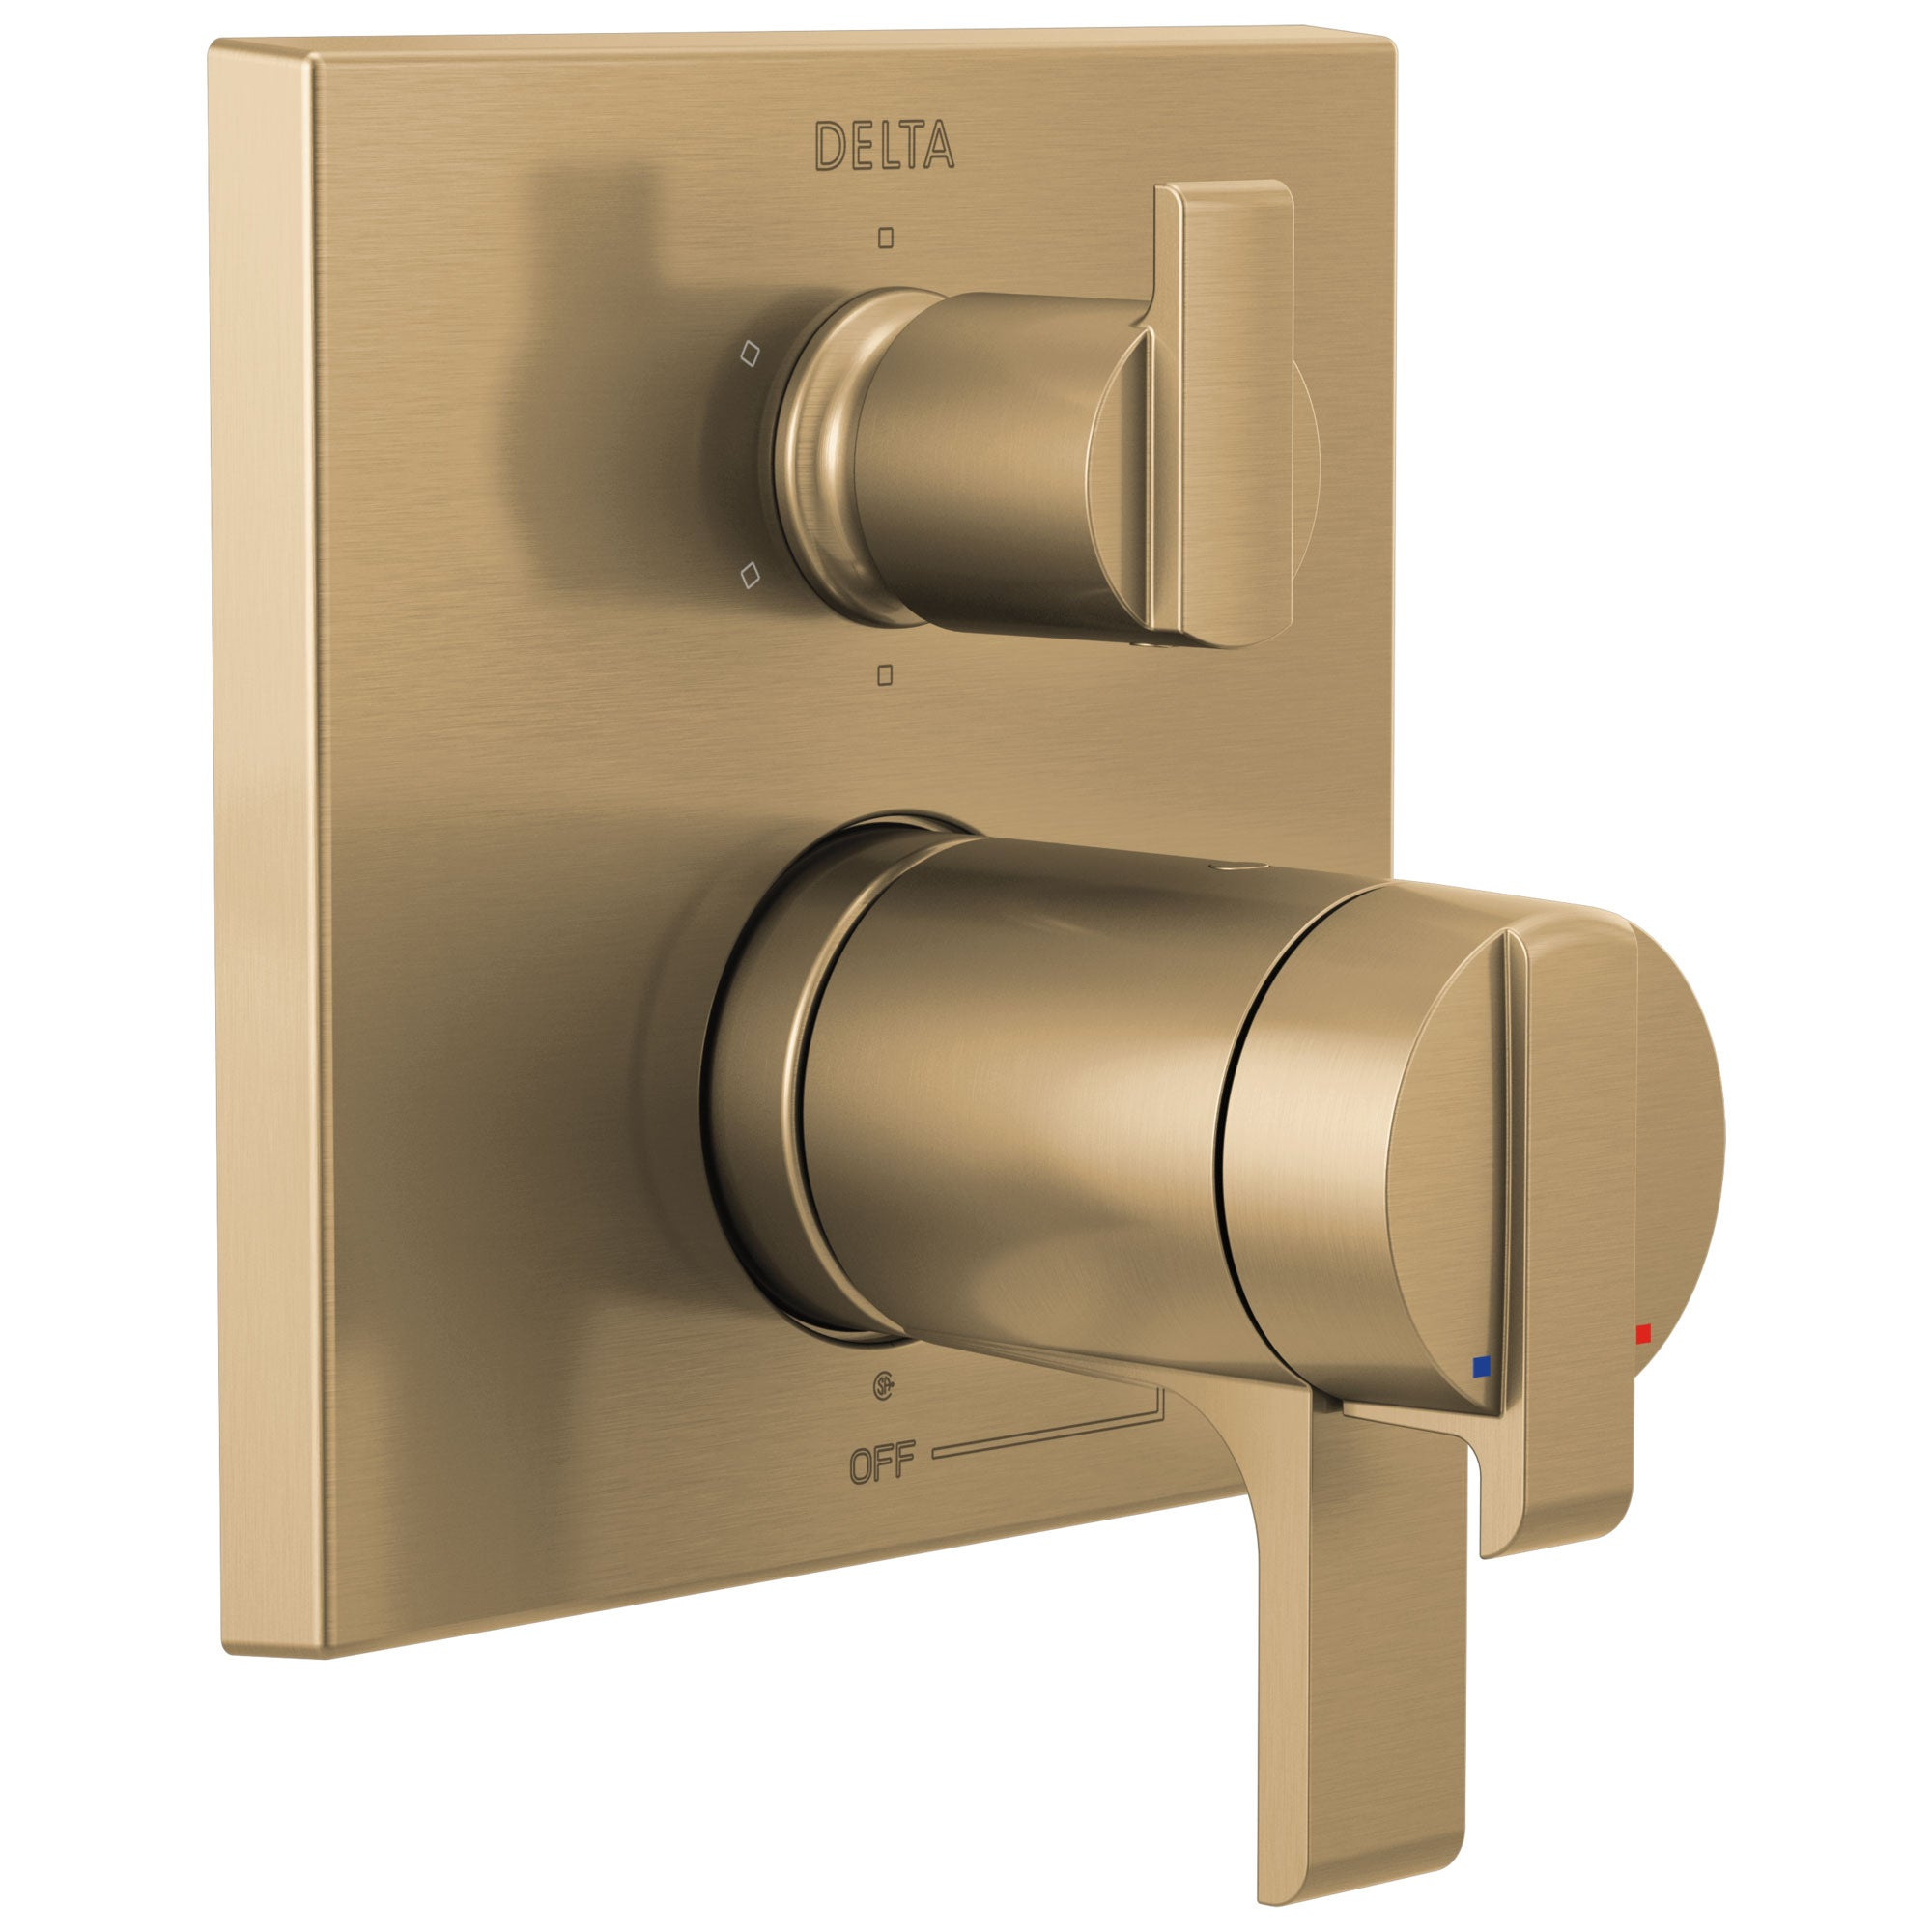 Delta Ara Champagne Bronze Finish Modern Thermostatic Shower System Control with 6-Setting Integrated Diverter Includes Rough Valve and Handles D3084V